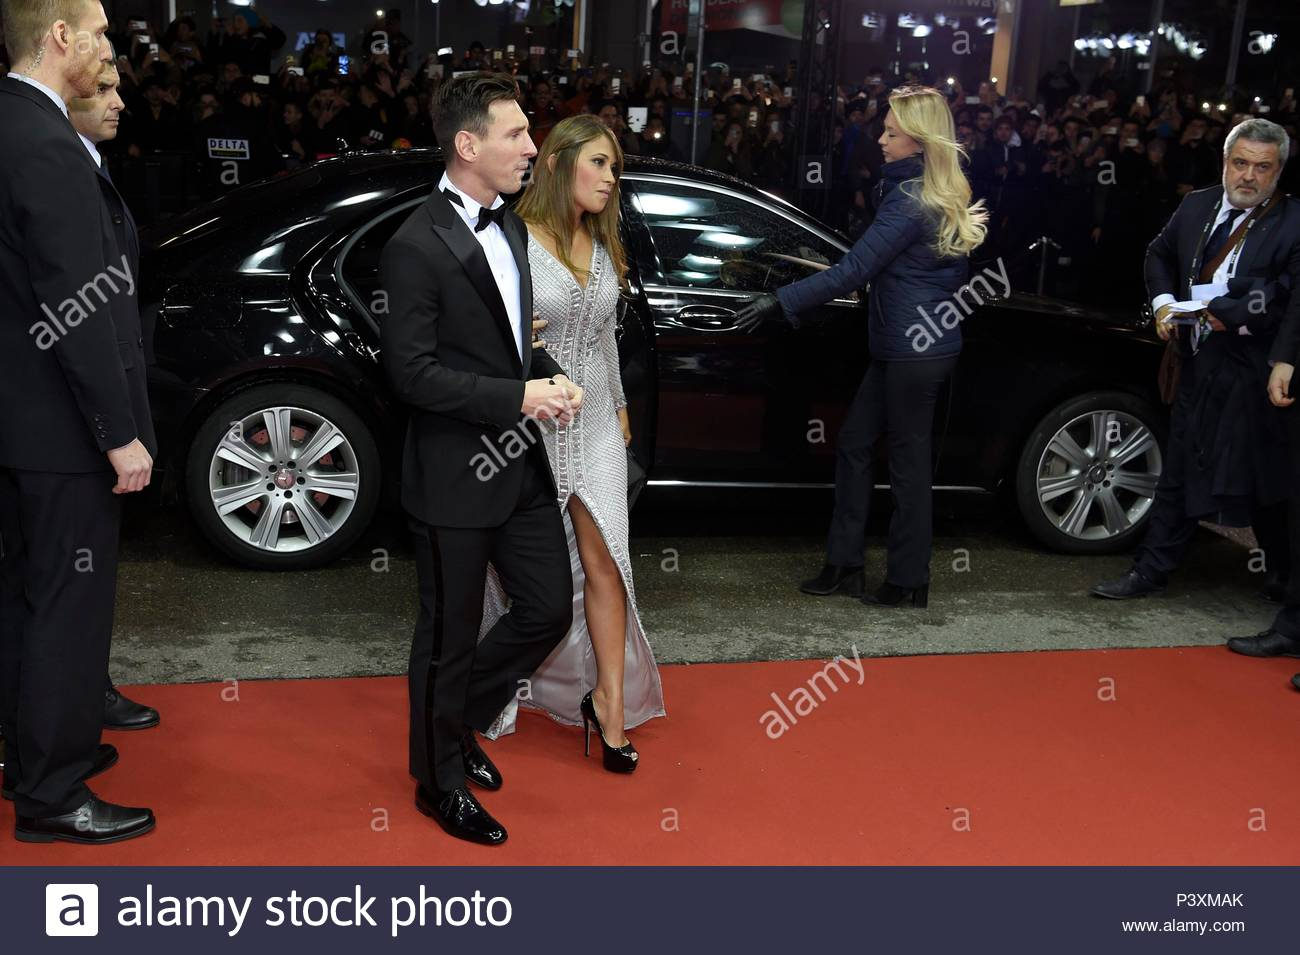 Lionel Messi and wife. FIFA Ballon d'Or Gala 2015 at the Kongresshaus in Zurich.  BALLON DOR 2015 - Stock Image